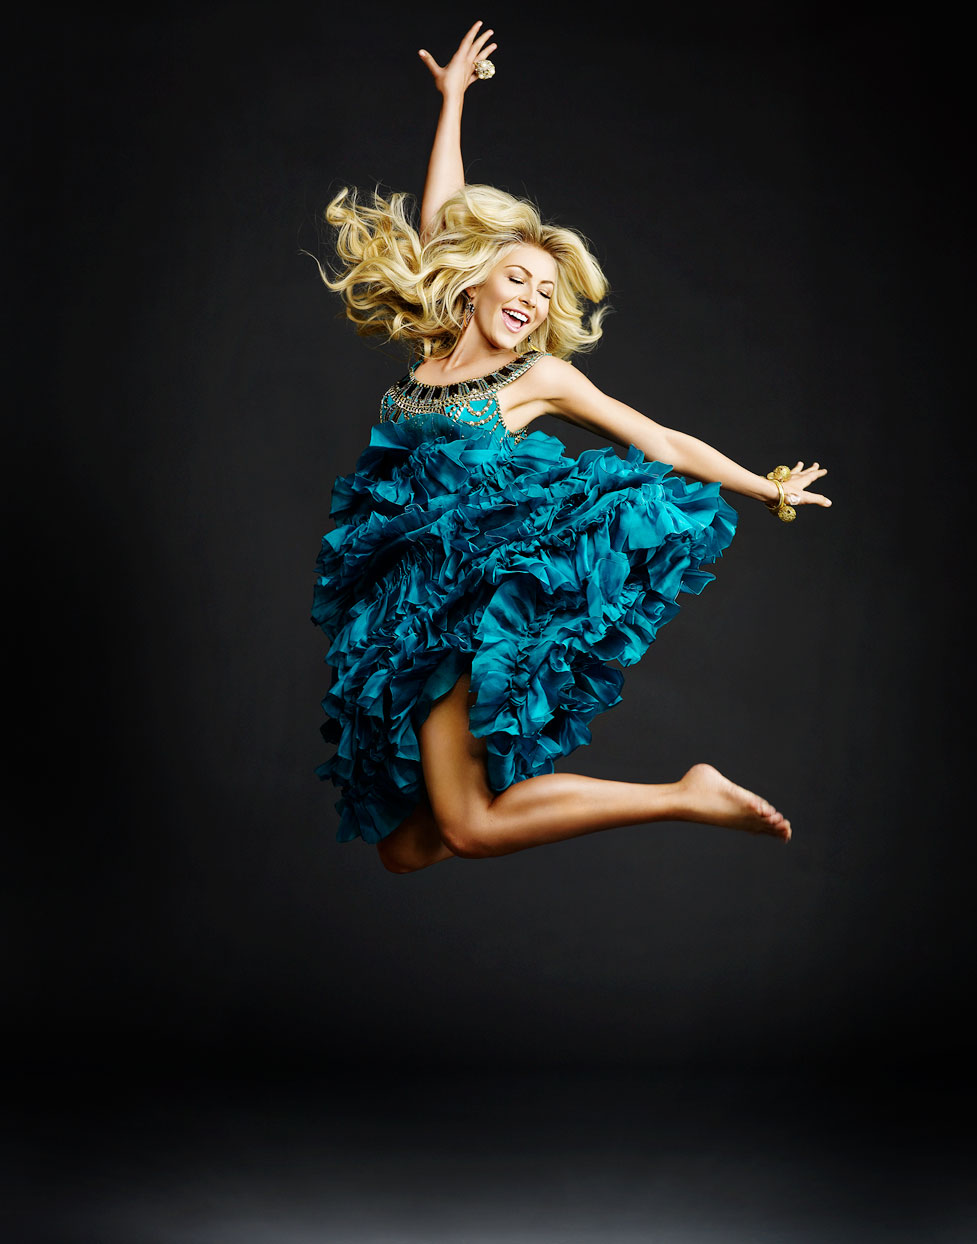 Mark DeLong - Celebrity Photographer - Blonde actress in a blue dress jumping in the air.